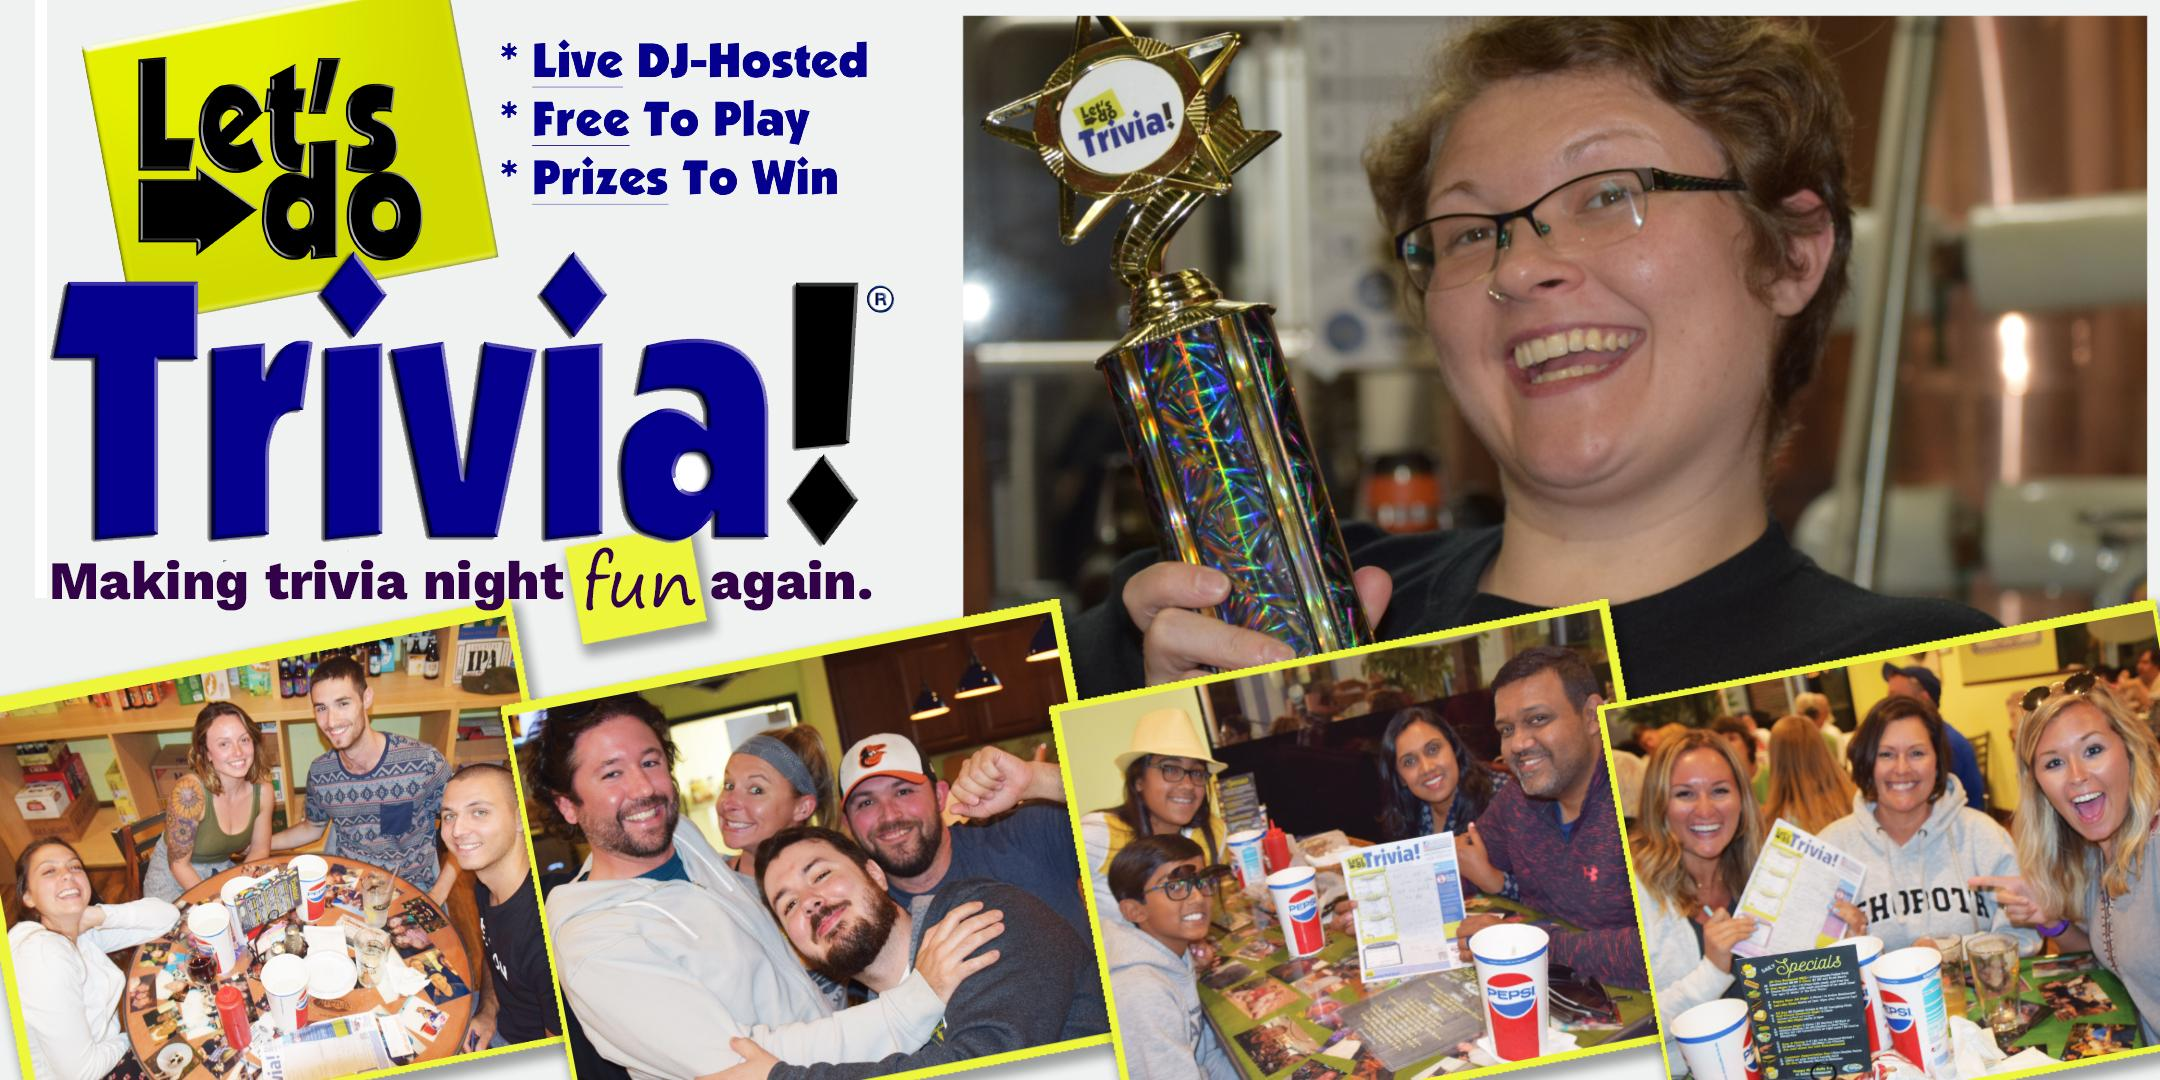 Christiana! Let's Do Trivia! is now at Christiana Pub